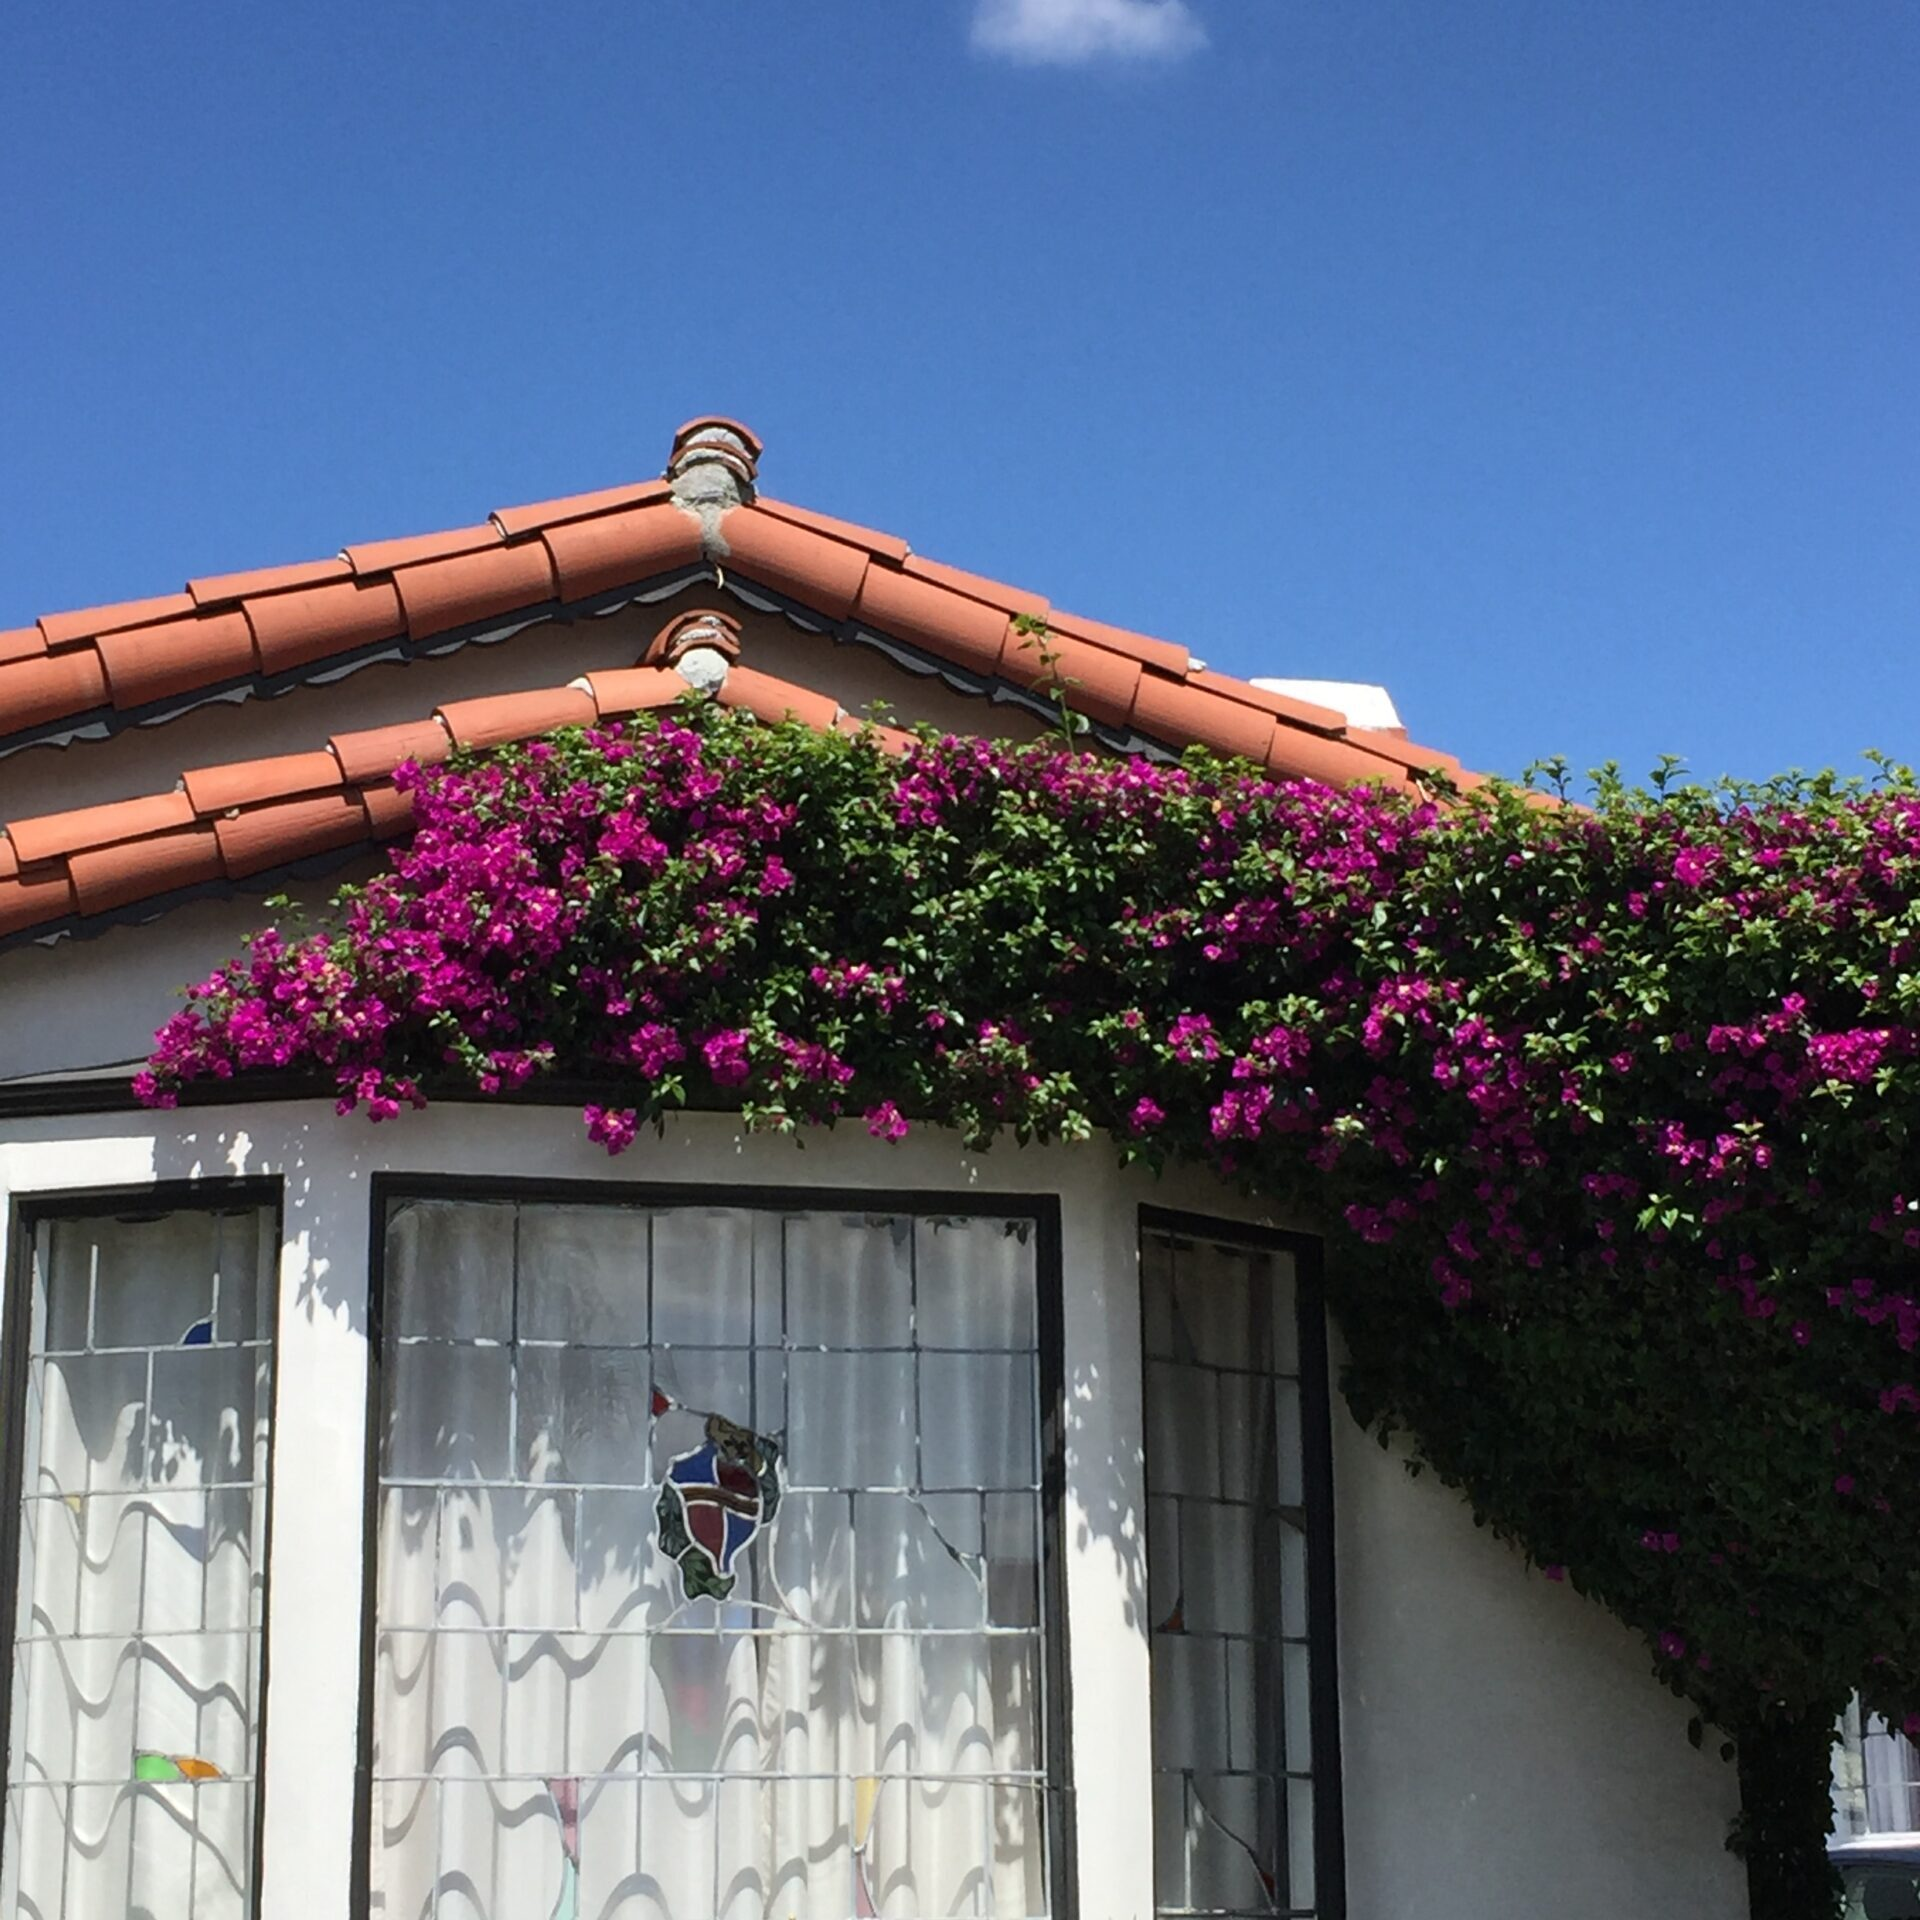 vines growing on house